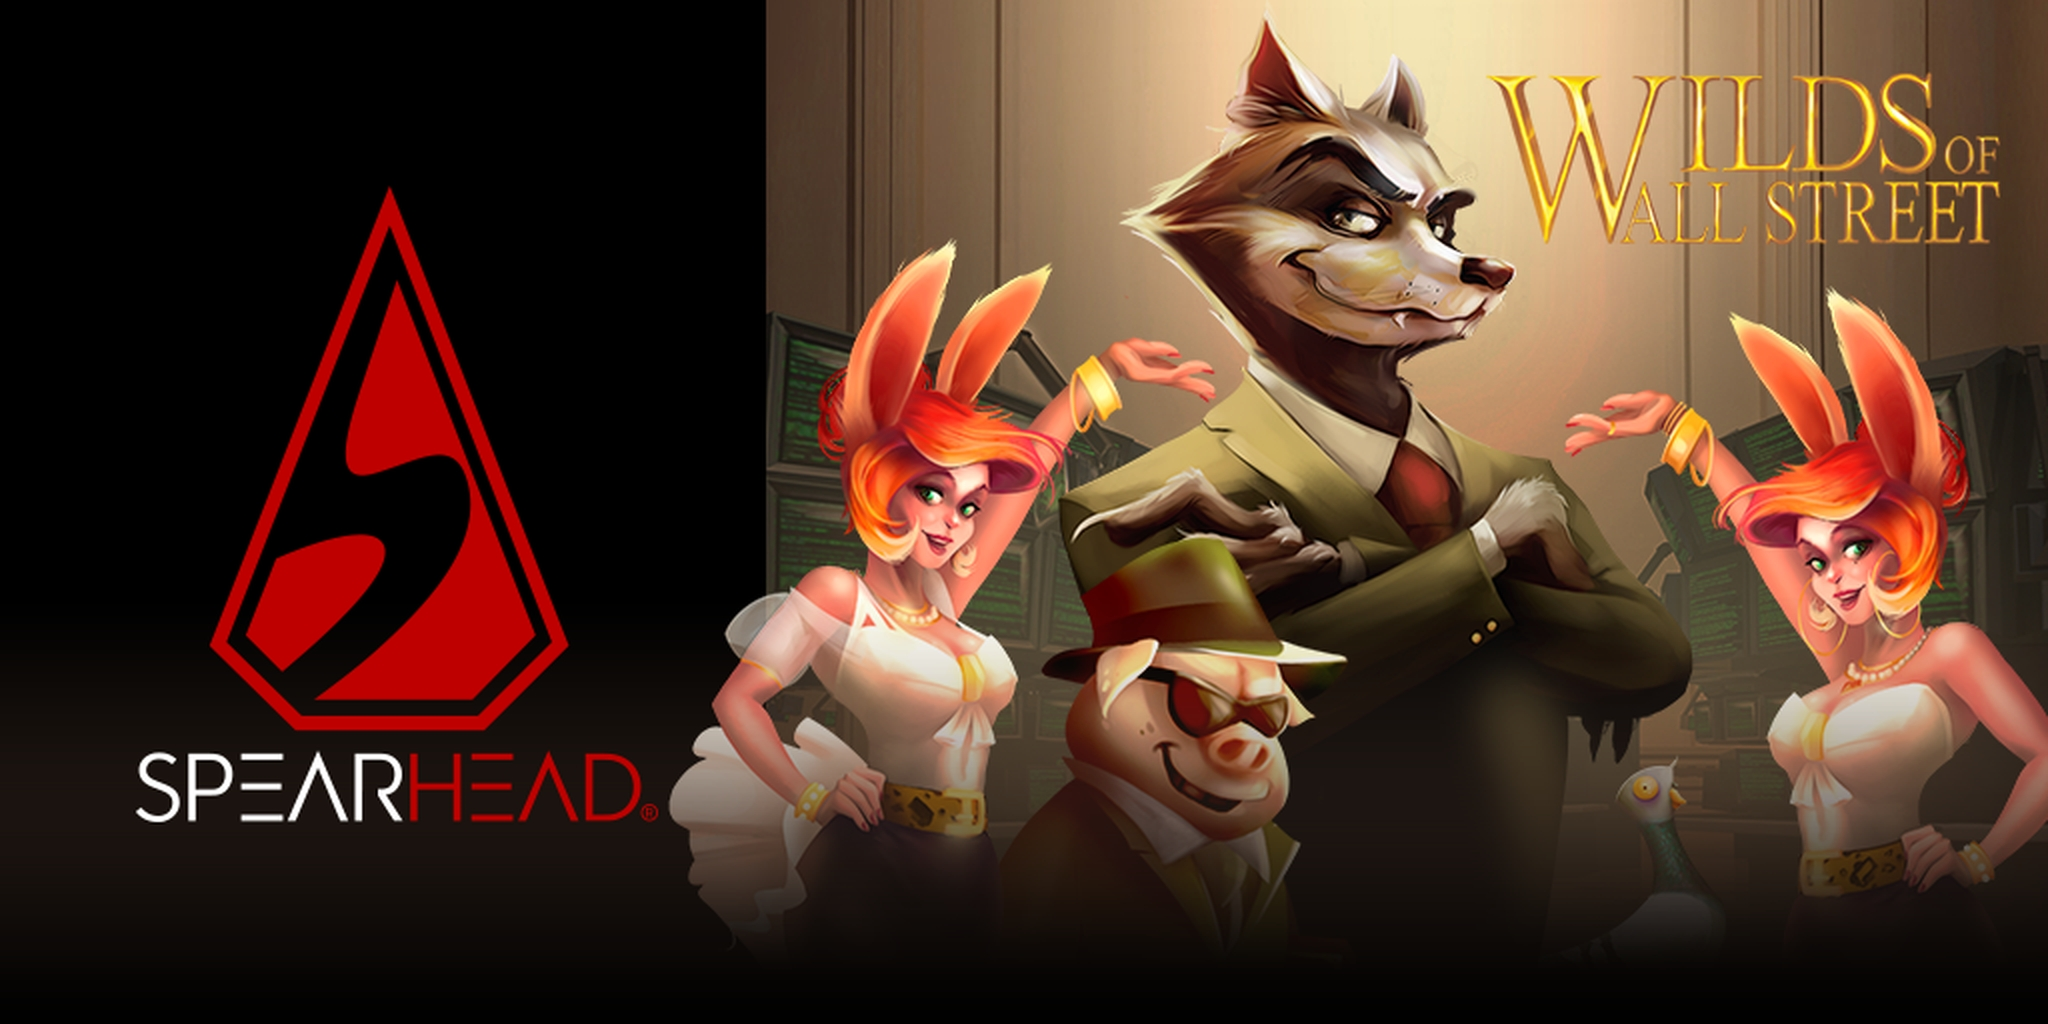 The Wilds of Wall Street Online Slot Demo Game by Spearhead Studios